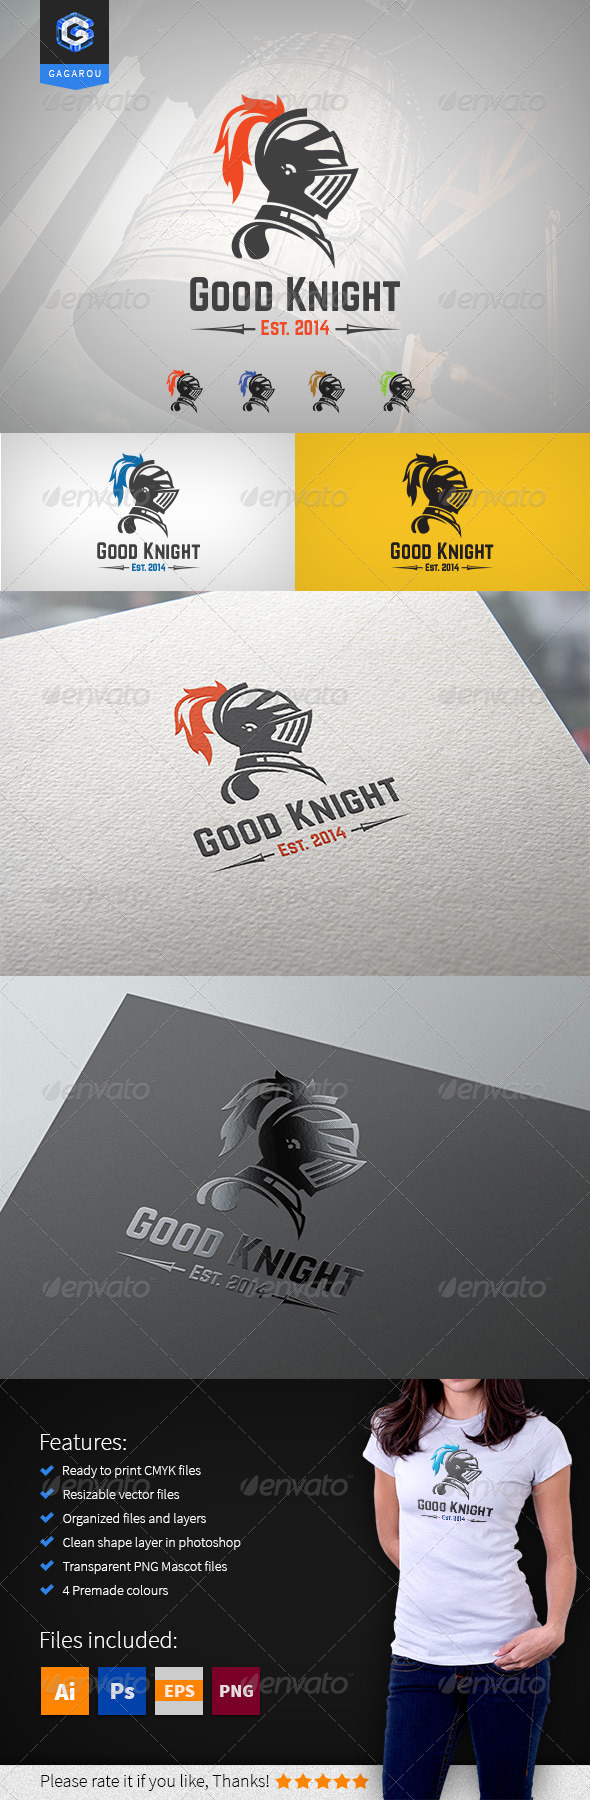 GraphicRiver Good Knight logo 8351359